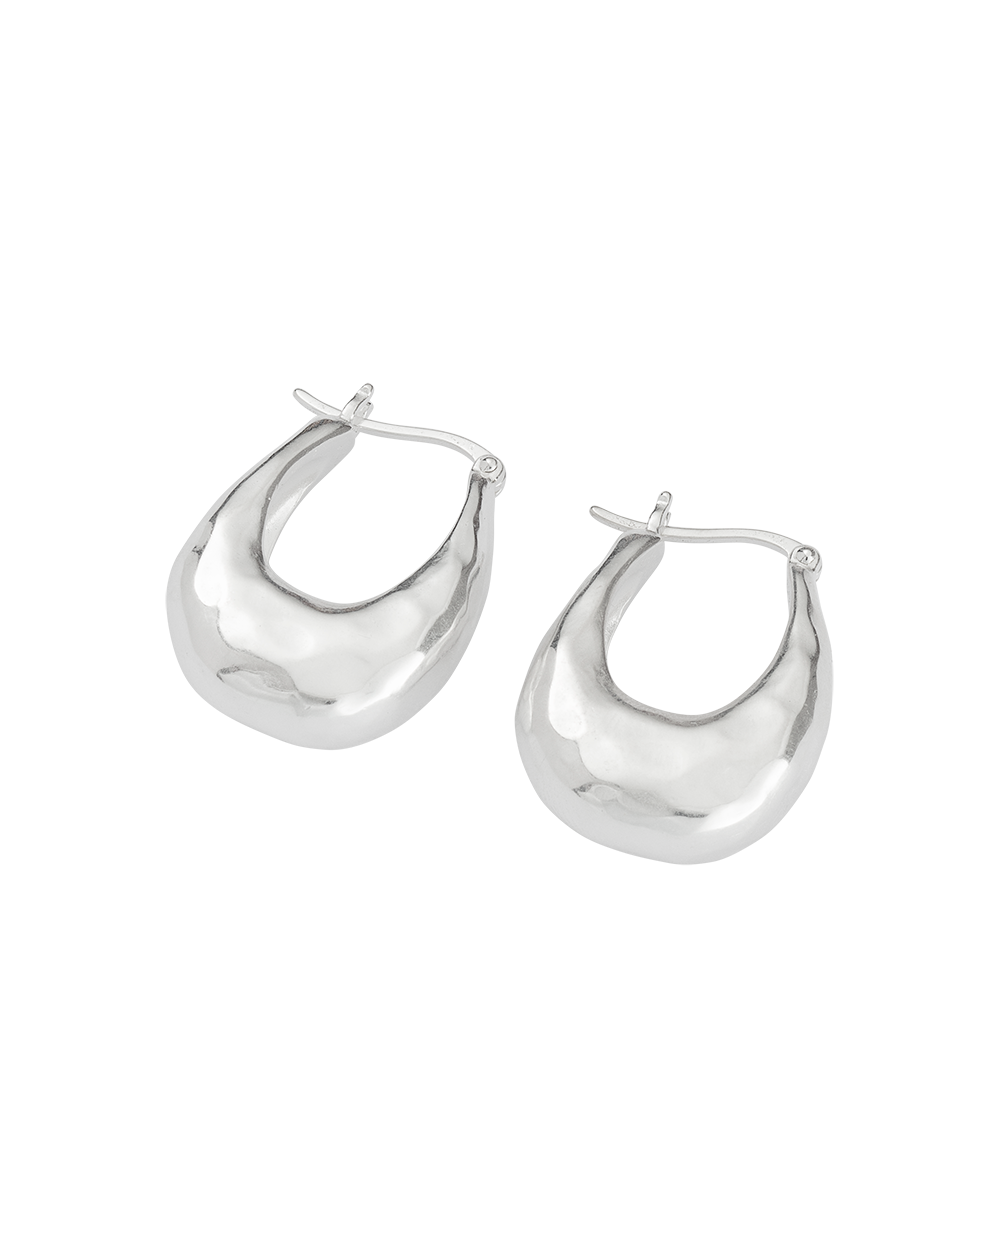 ESSENCE HOOPS MEDIUM (STERLING SIlVER) - SIDE